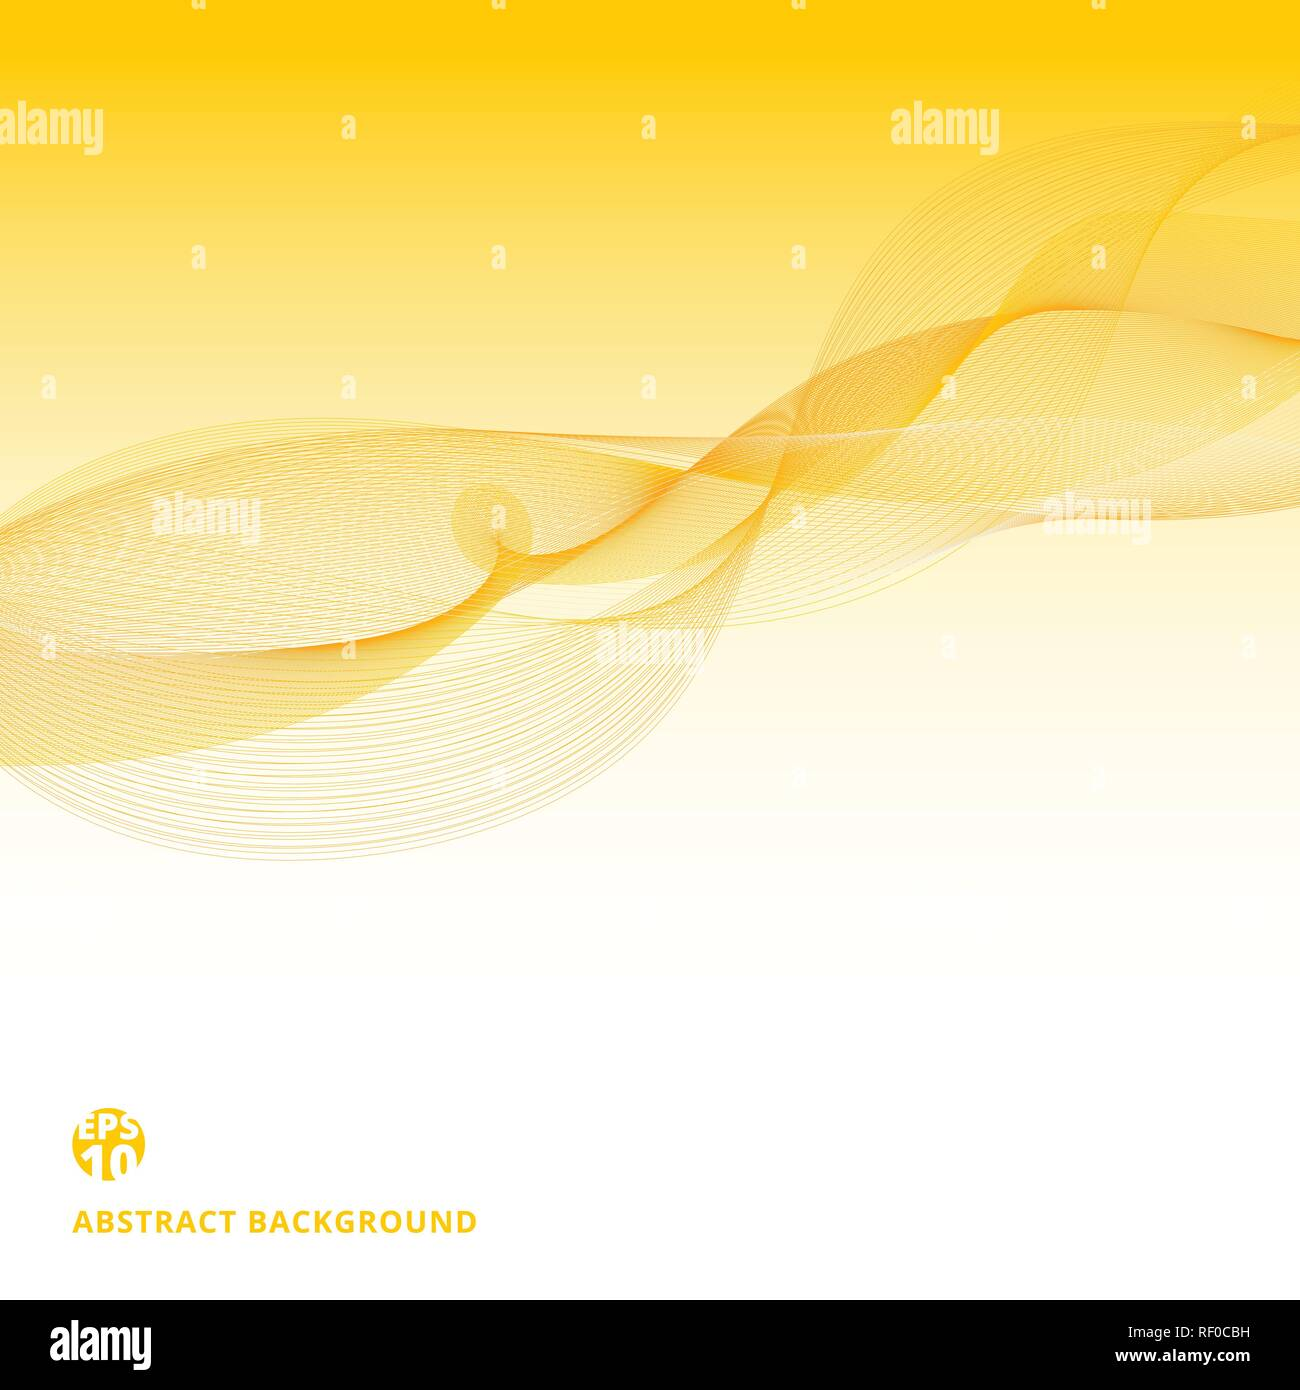 Abstract yellow lines waves pattern on white background. Data stream concept. Vector illustration - Stock Image